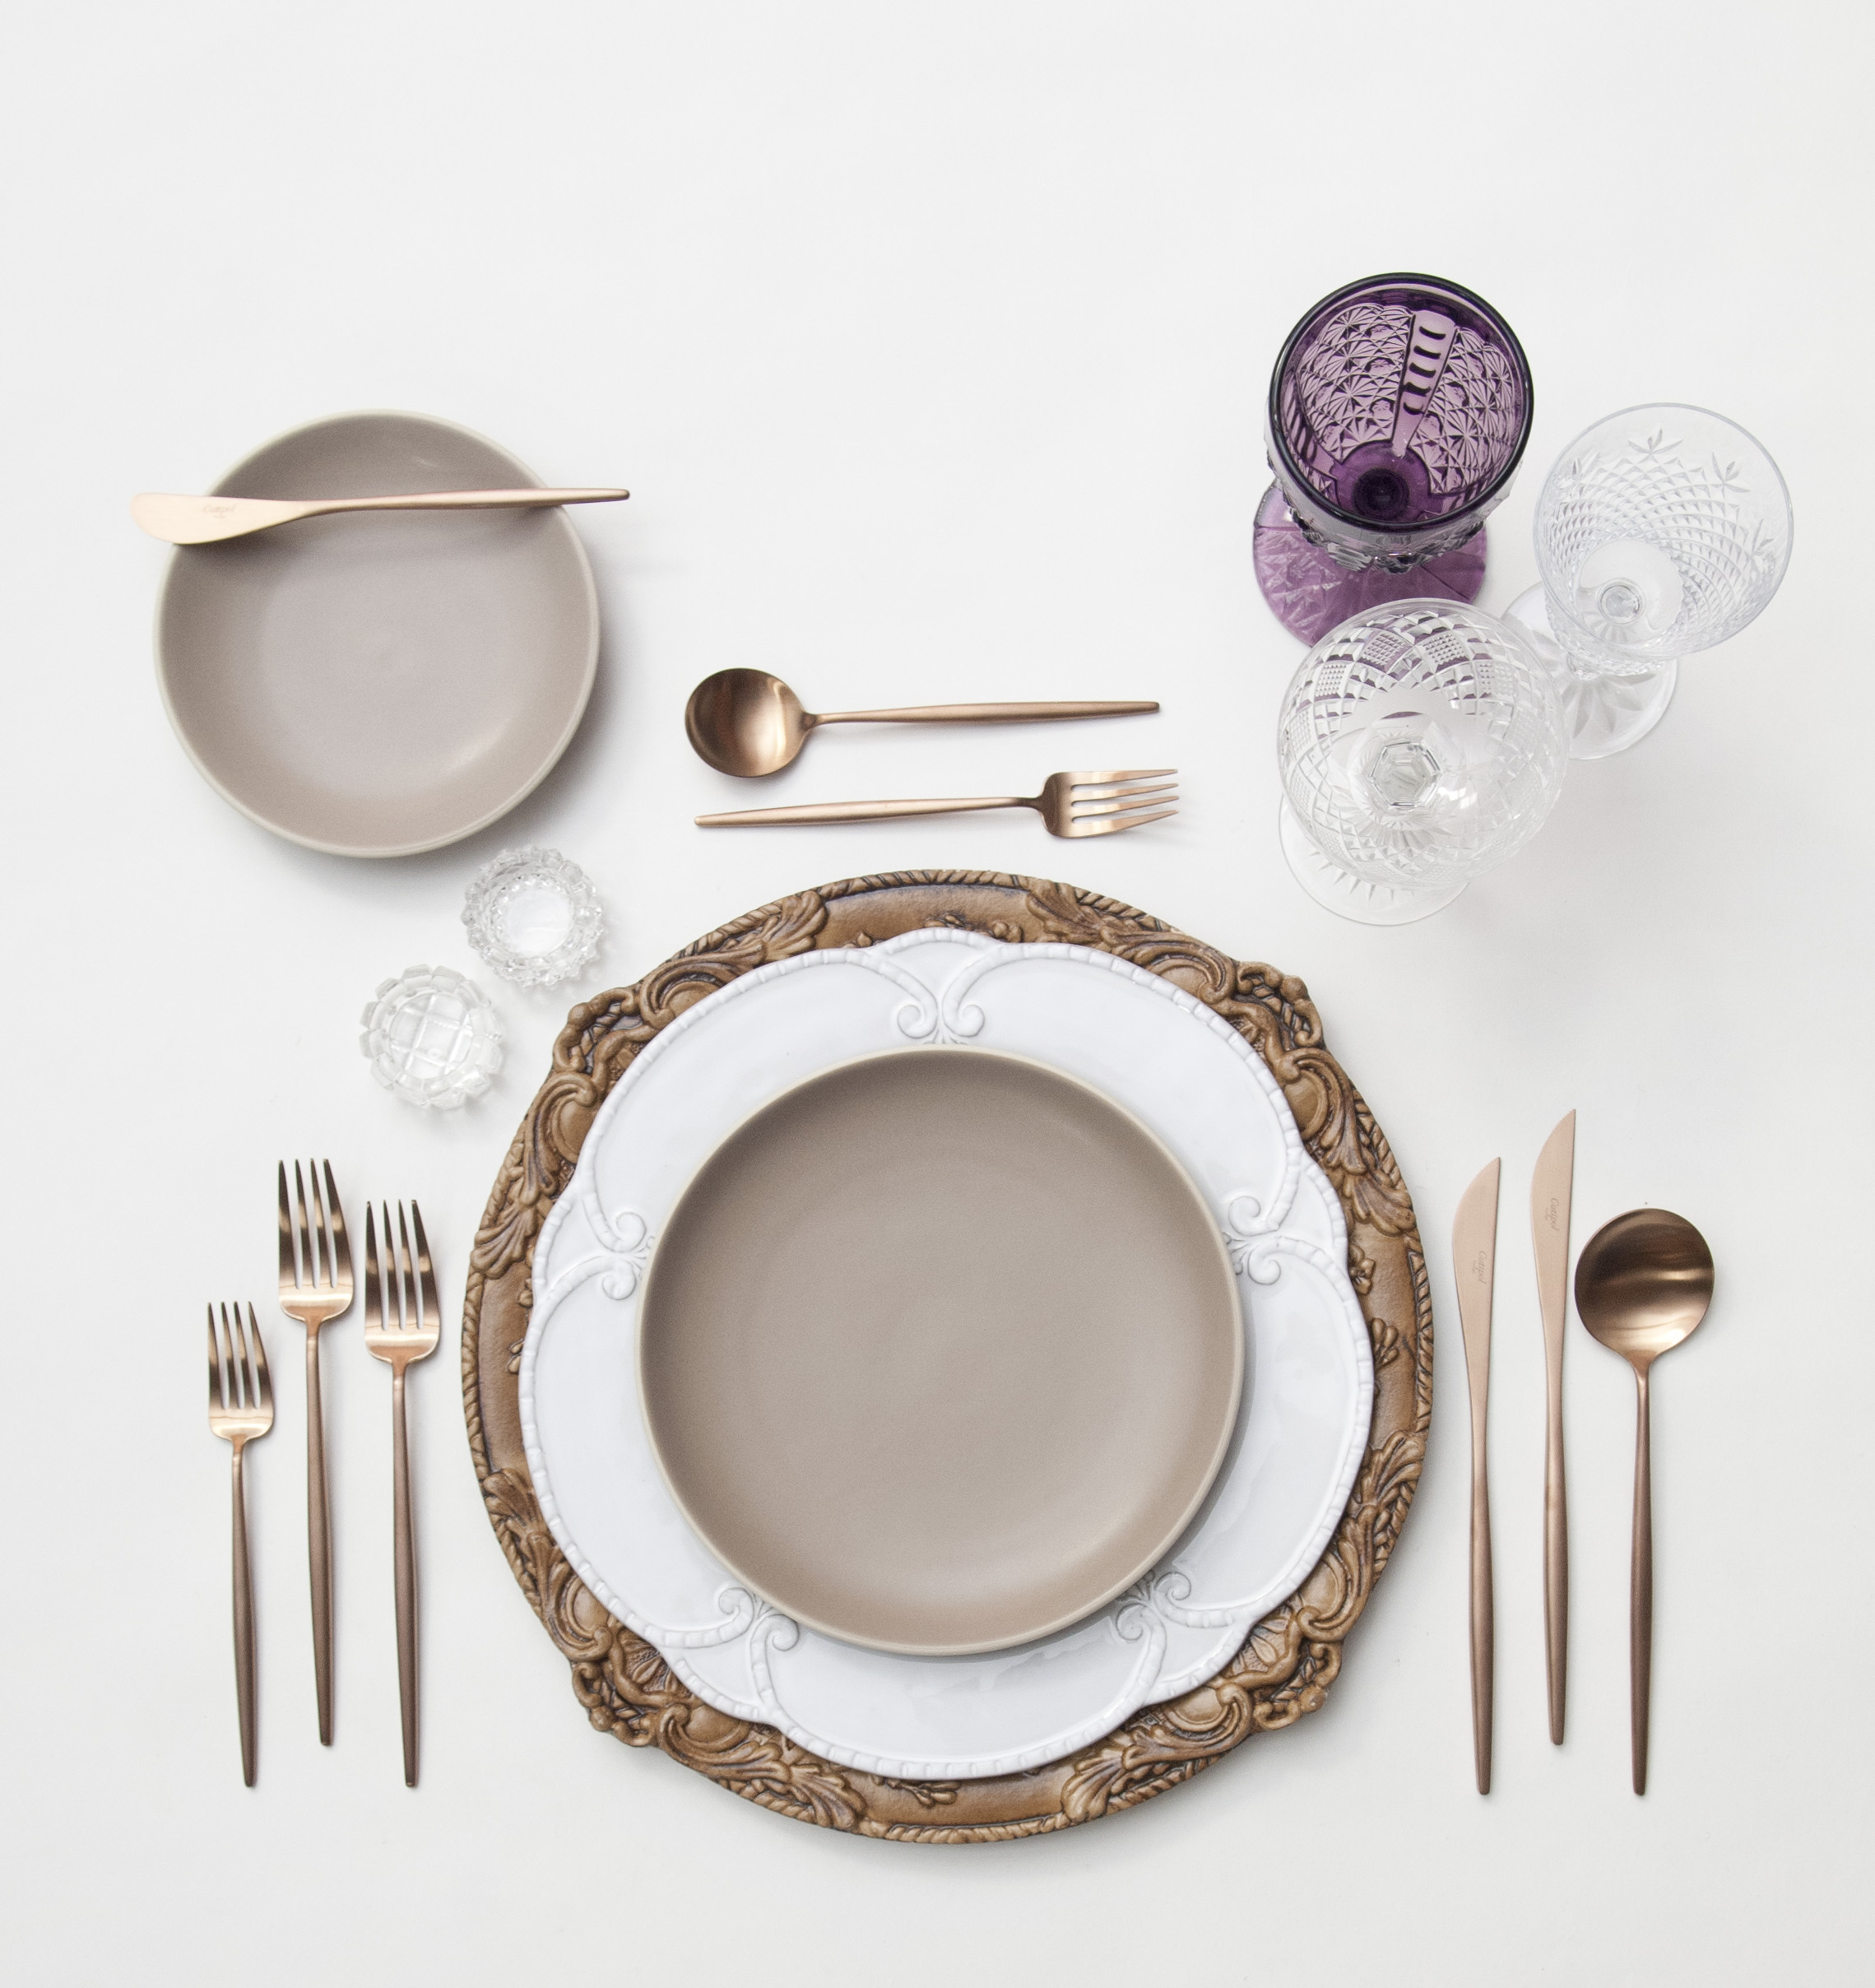 RENT: Verona Chargers in Walnut + Signature Collection Dinnerware + Heath Ceramics in French Grey + Moon Flatware in Brushed Rose Gold + Purple Vintage Goblets + Vintage Cut Crystal Goblets + Vintage Champagne Coupes + Antique Crystal Salt Cellars  SHOP:Verona Chargers in Walnut + Moon Flatware in Brushed Rose Gold